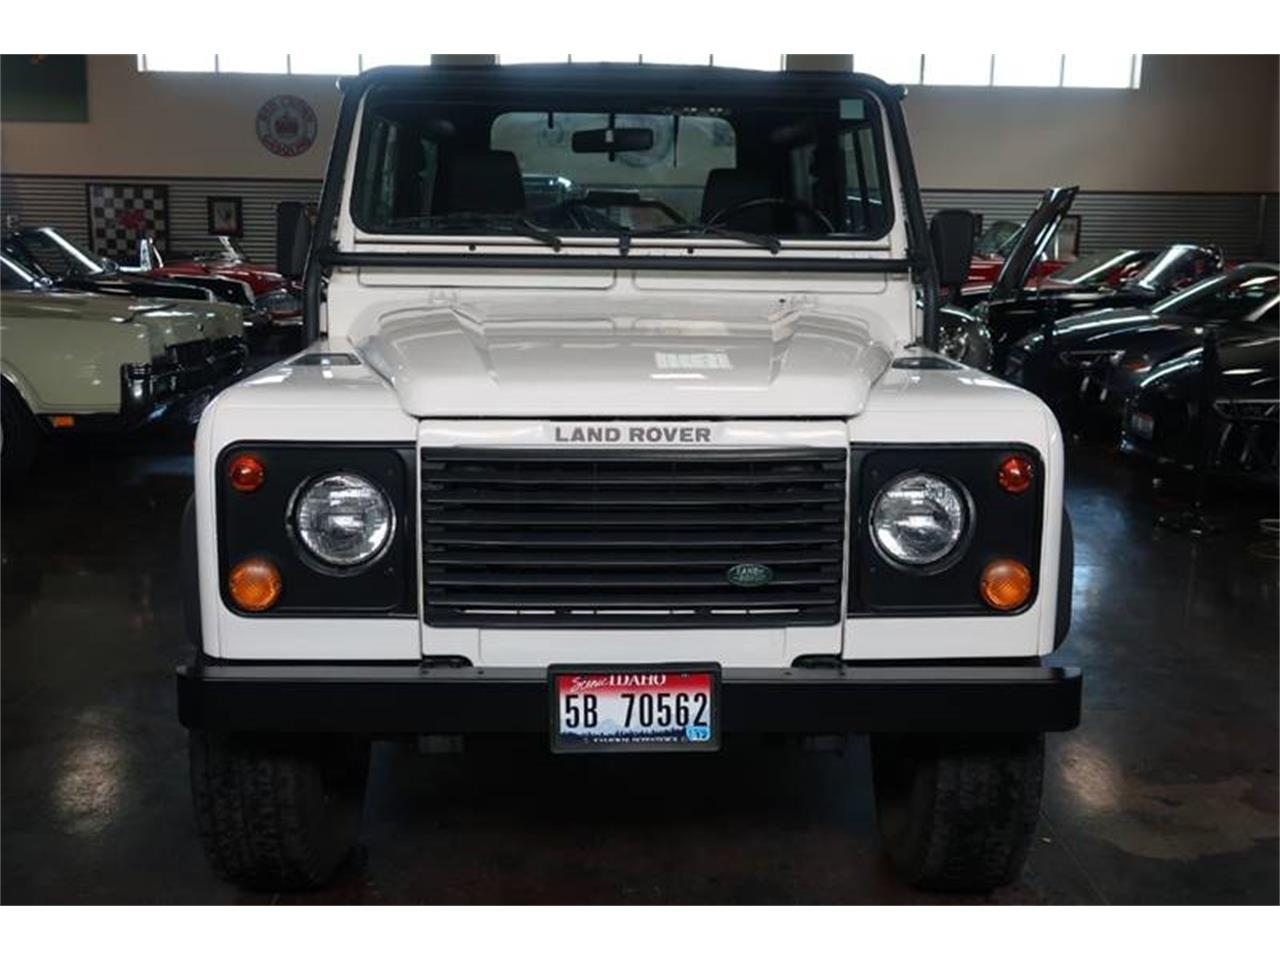 1995 Land Rover Defender for sale in Hailey, ID – photo 9